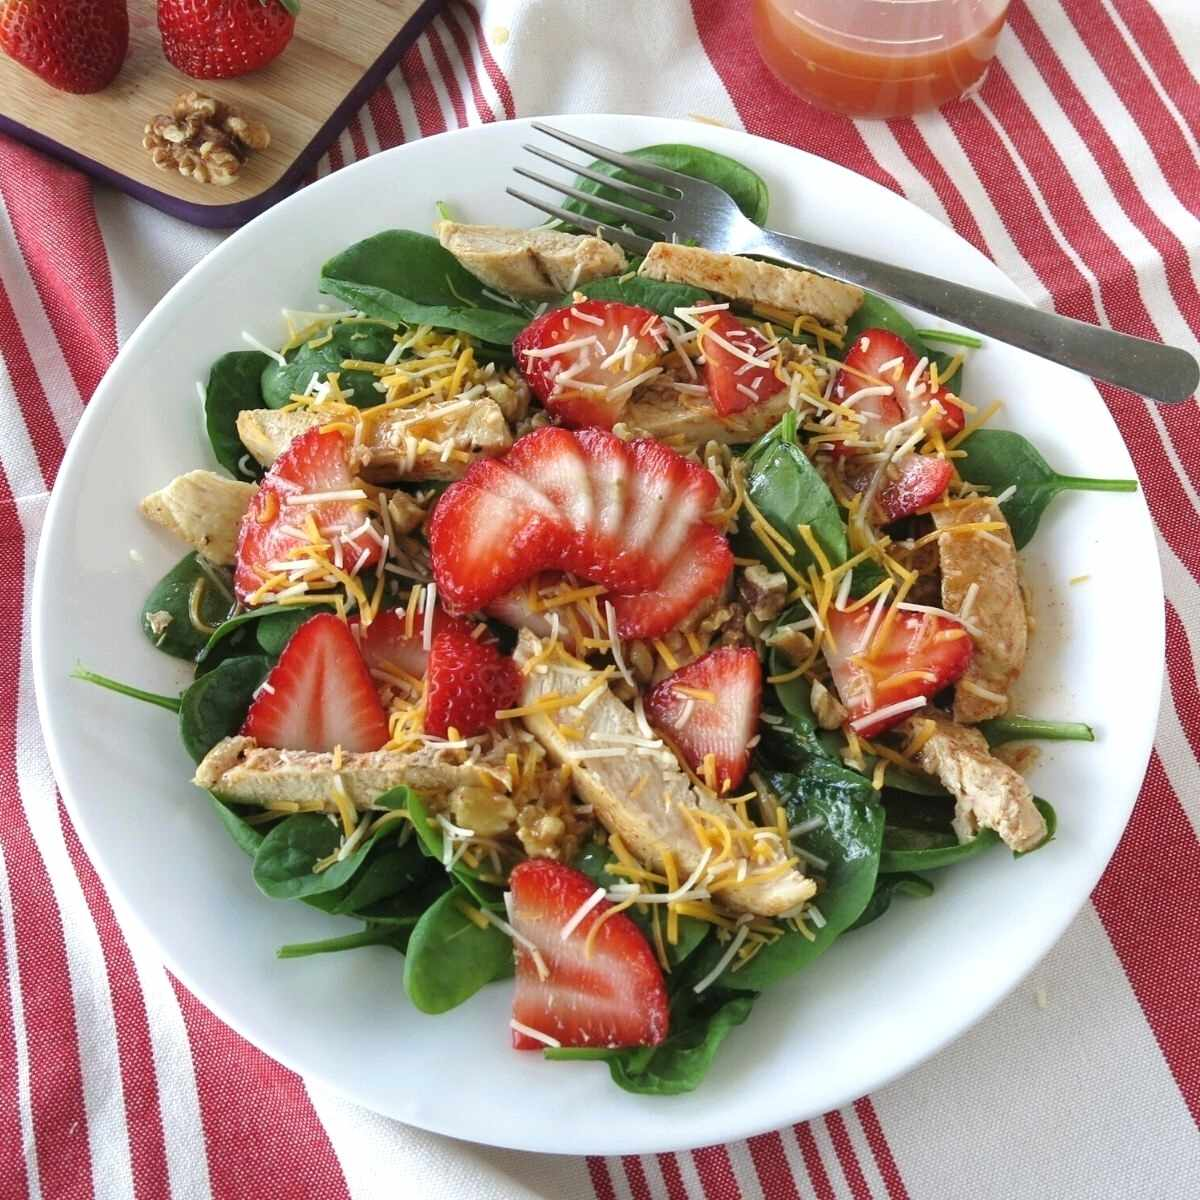 Spinach salad with strawberries, walnuts, cheese and chicken on a plate with a fork.